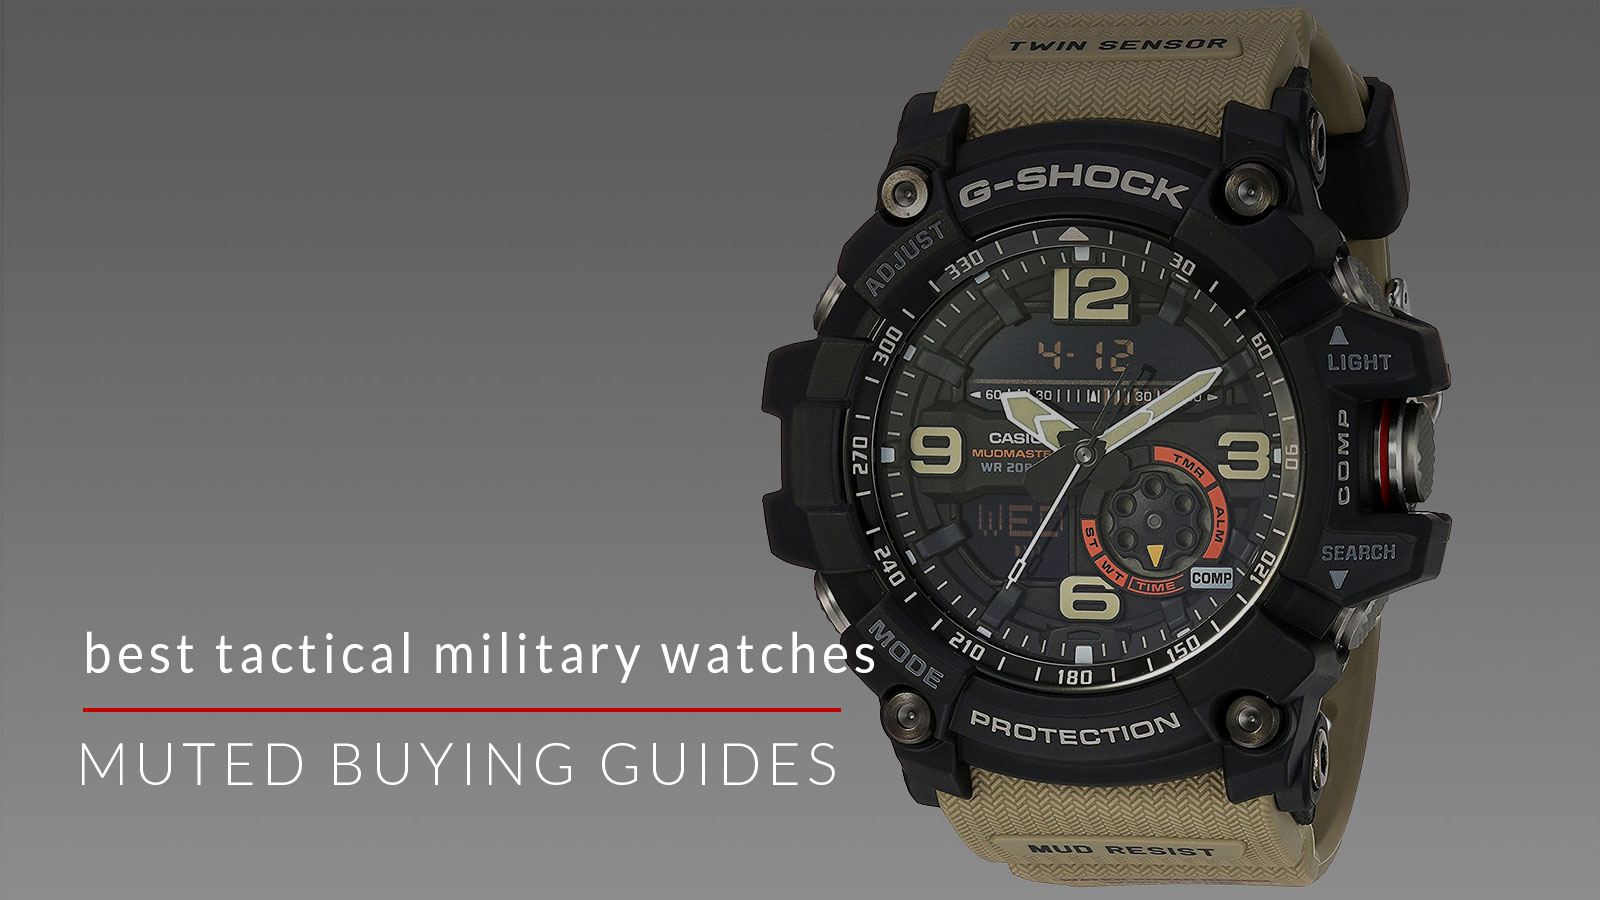 best tactical military watches for men